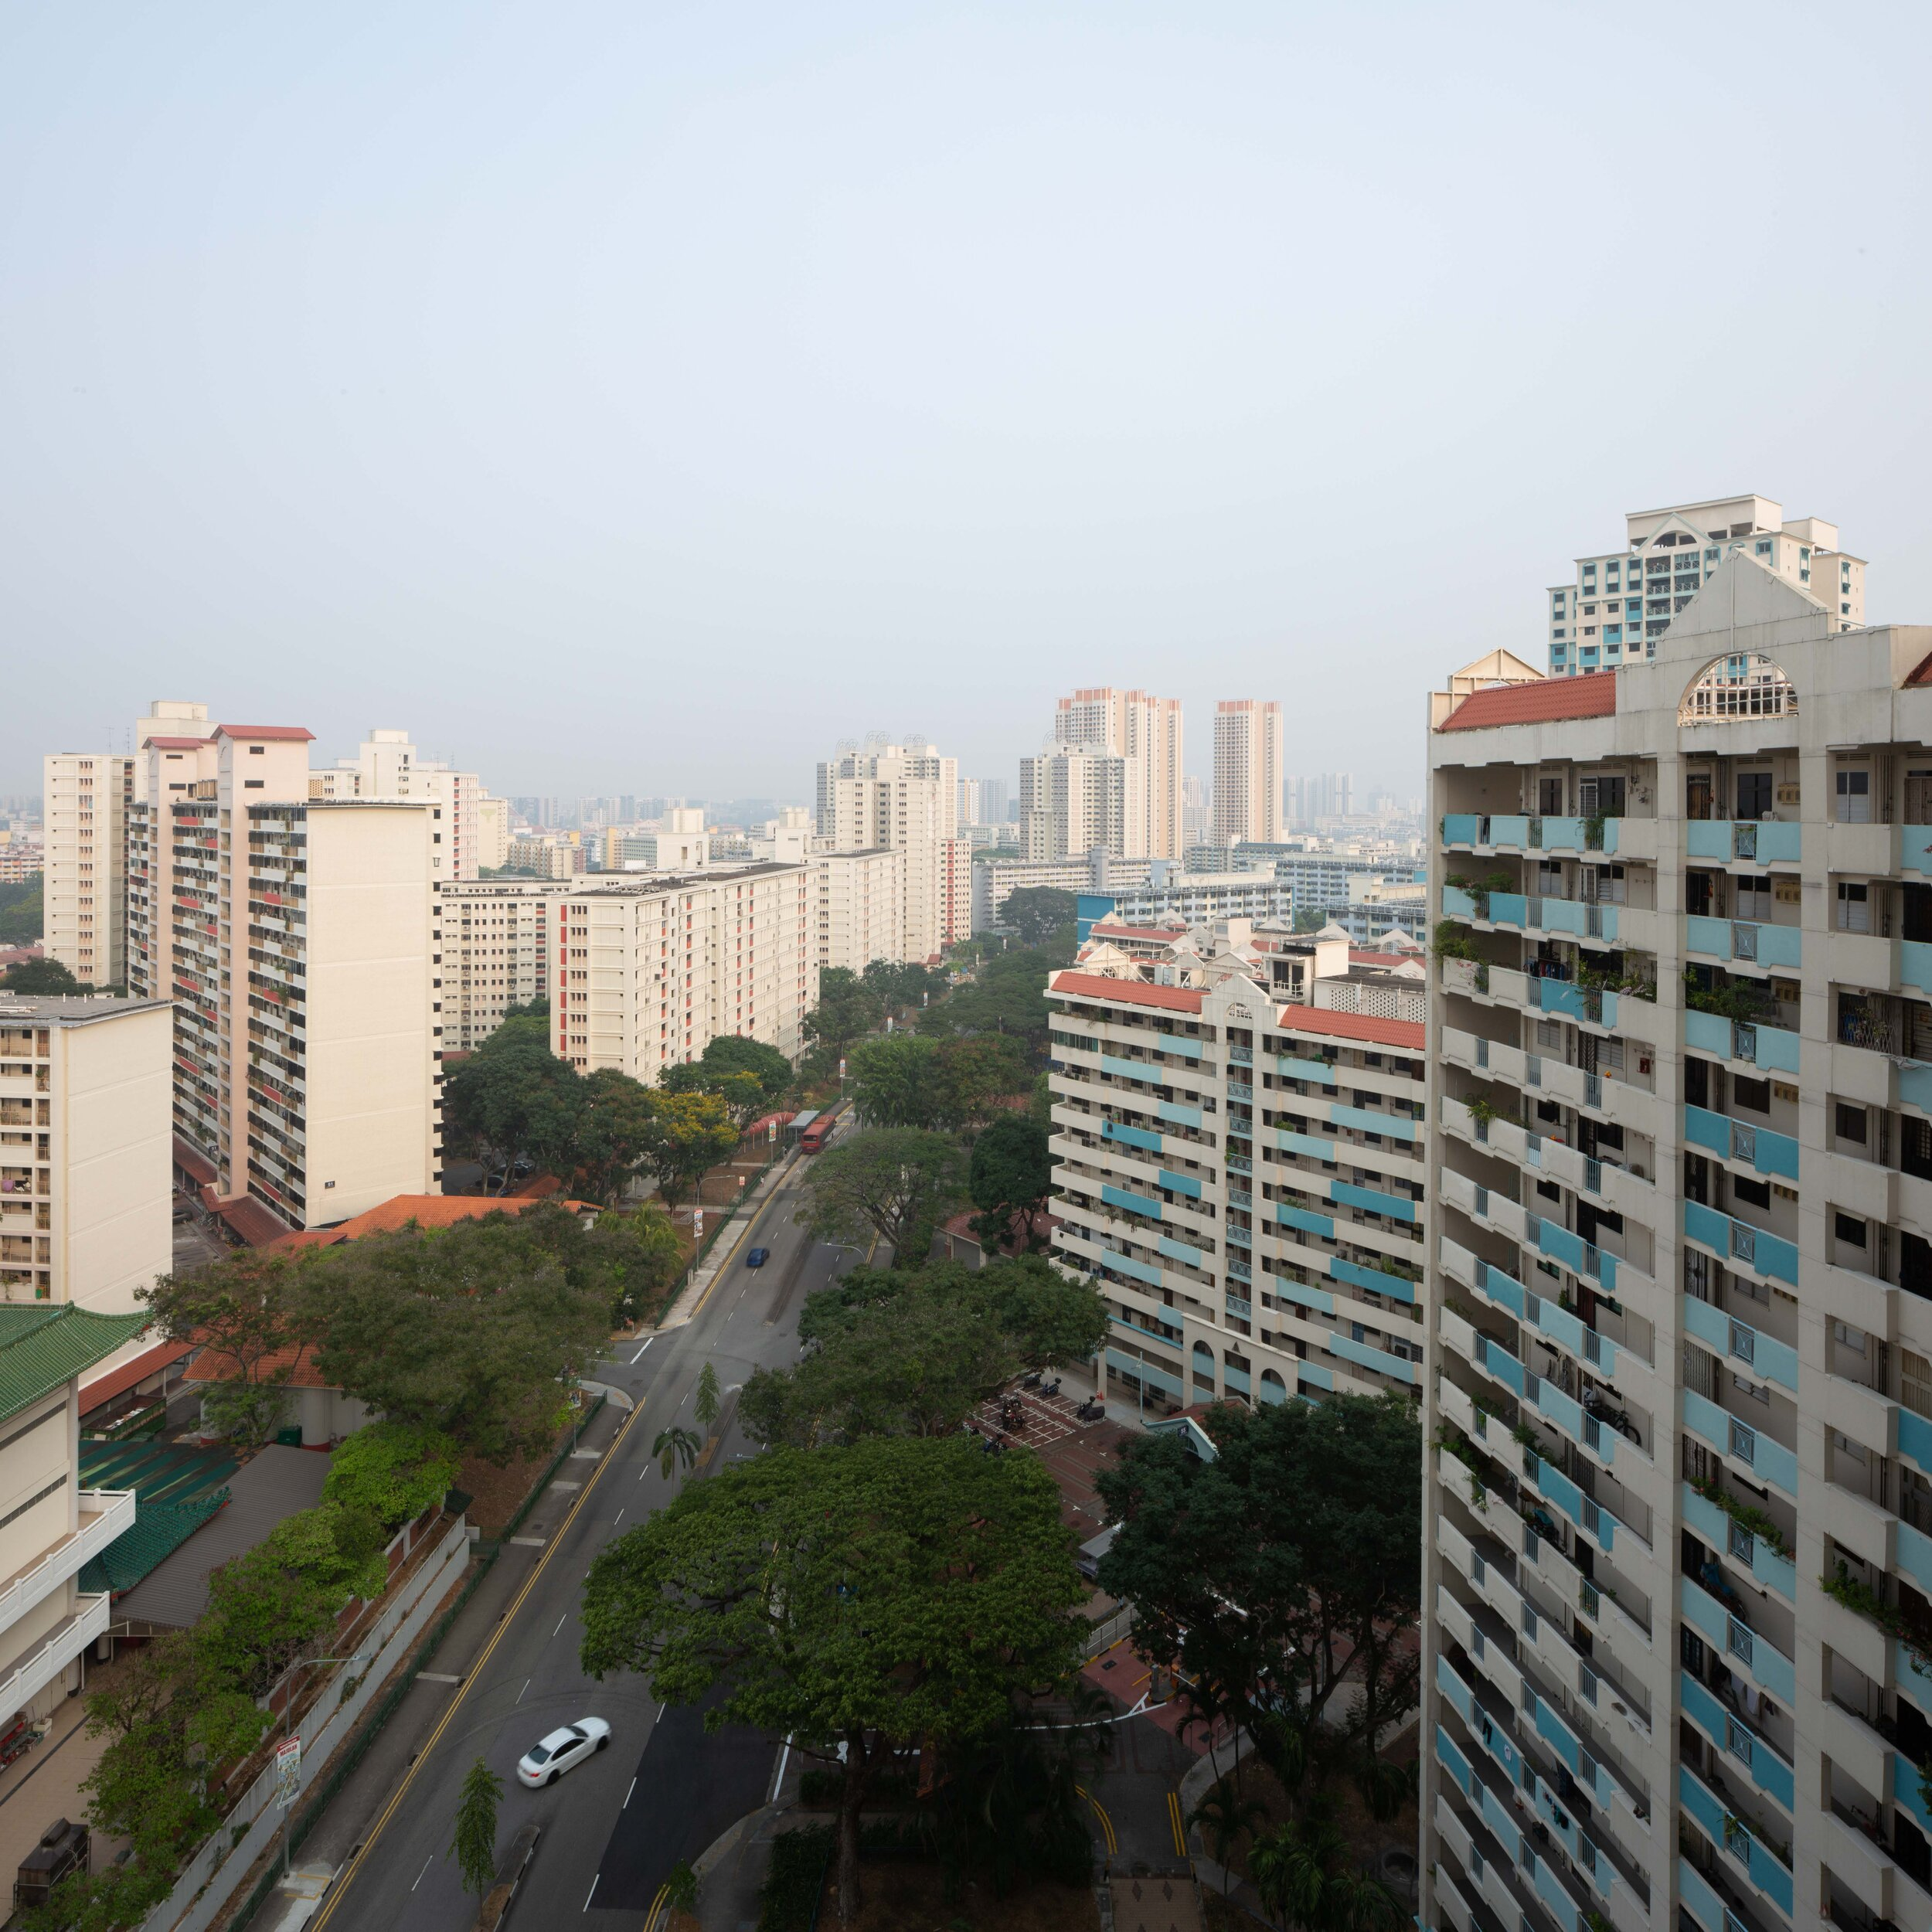 53 Lorong 5 Toa Payoh 190918 075, image by Andrew Campbell Nelson.jpg